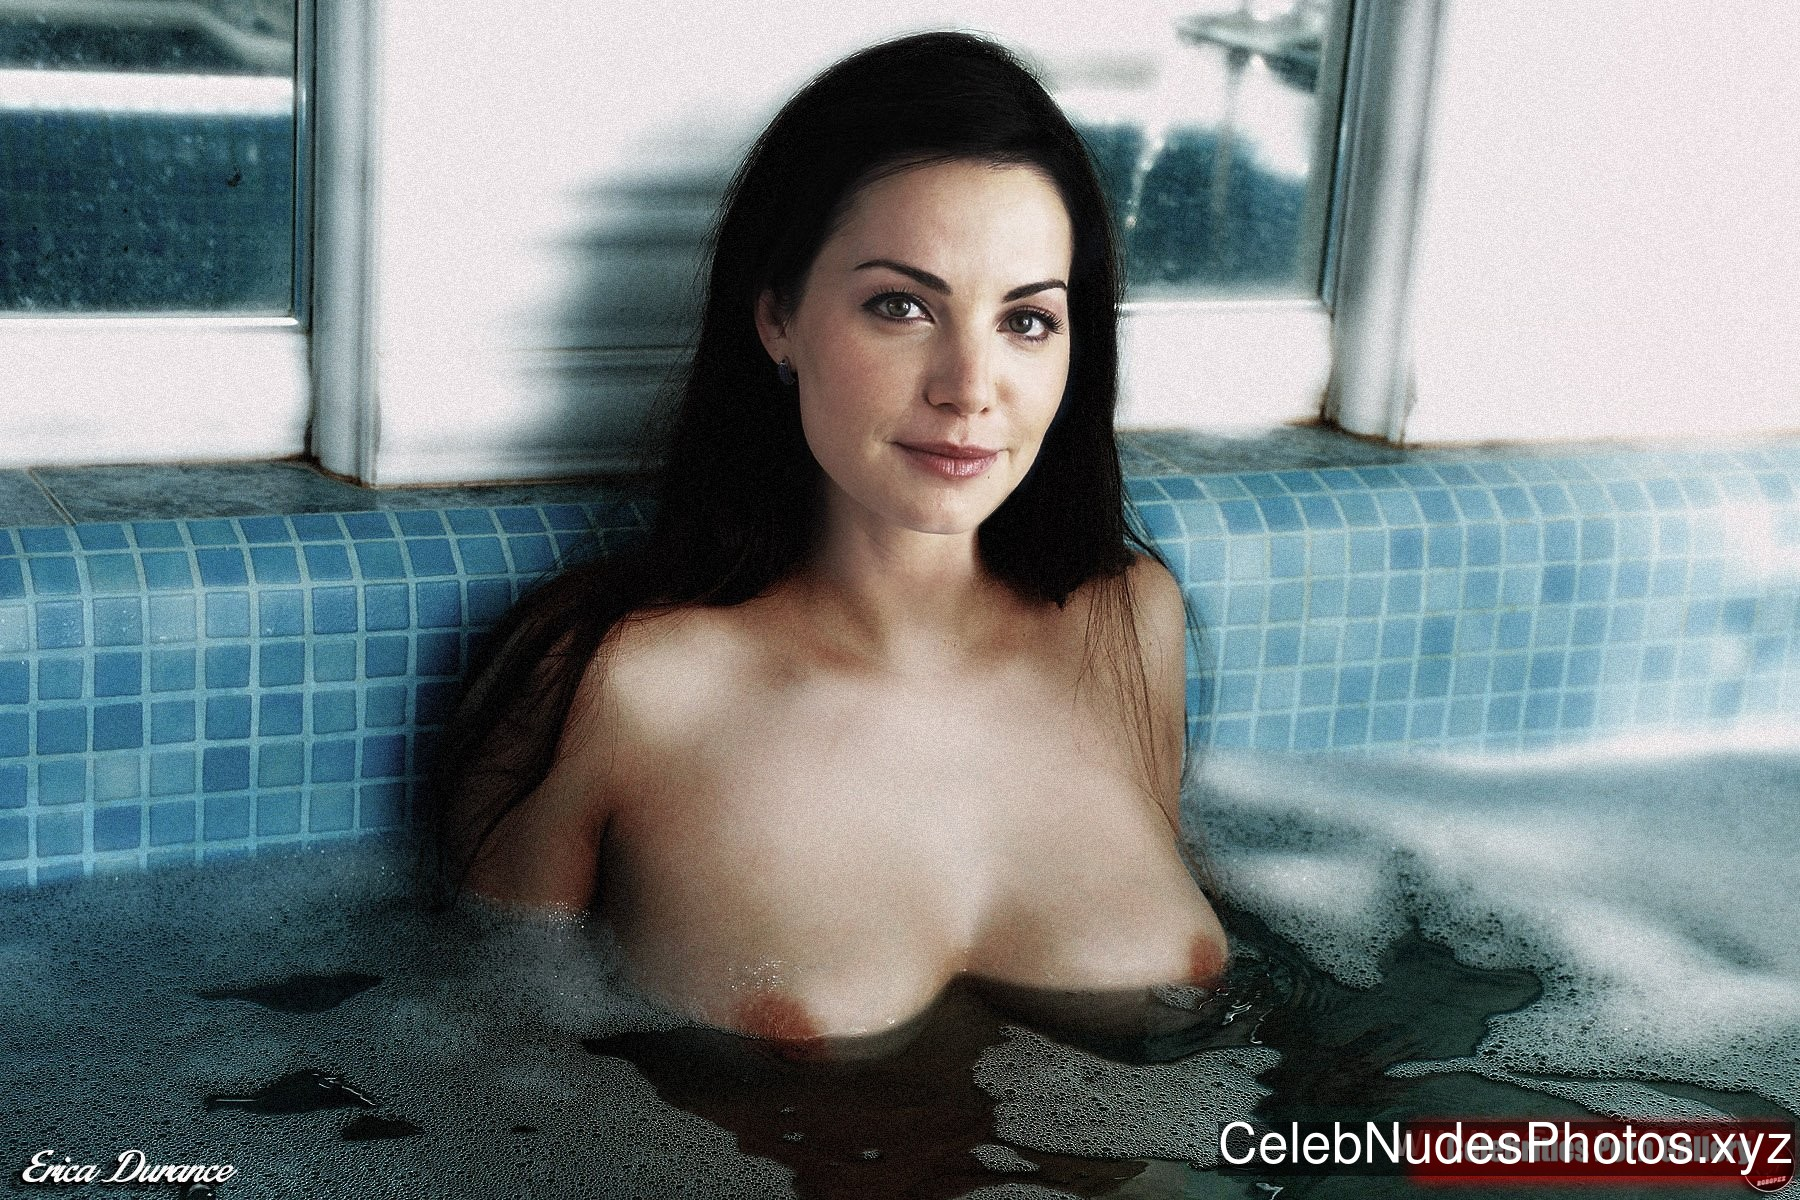 Erica Durance Celebrity Nude Pic sexy 6